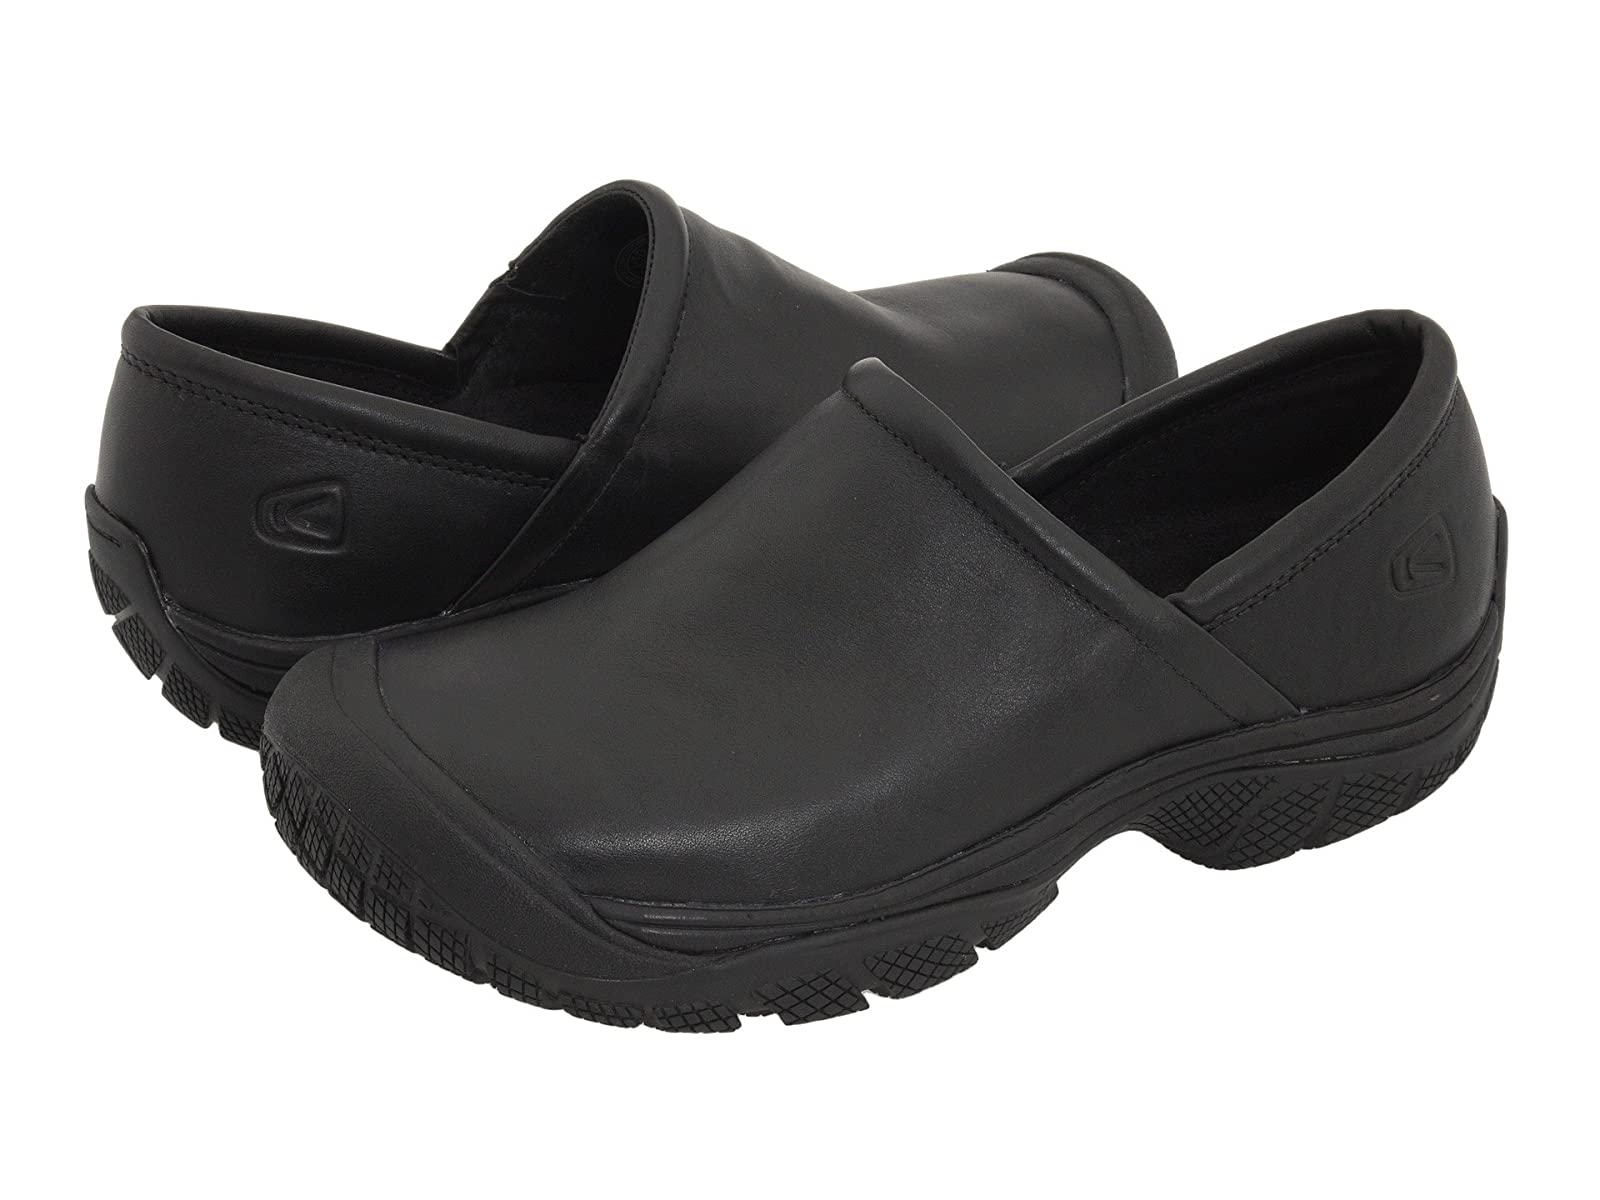 Keen Utility PTC Slip-On IIAtmospheric grades have affordable shoes